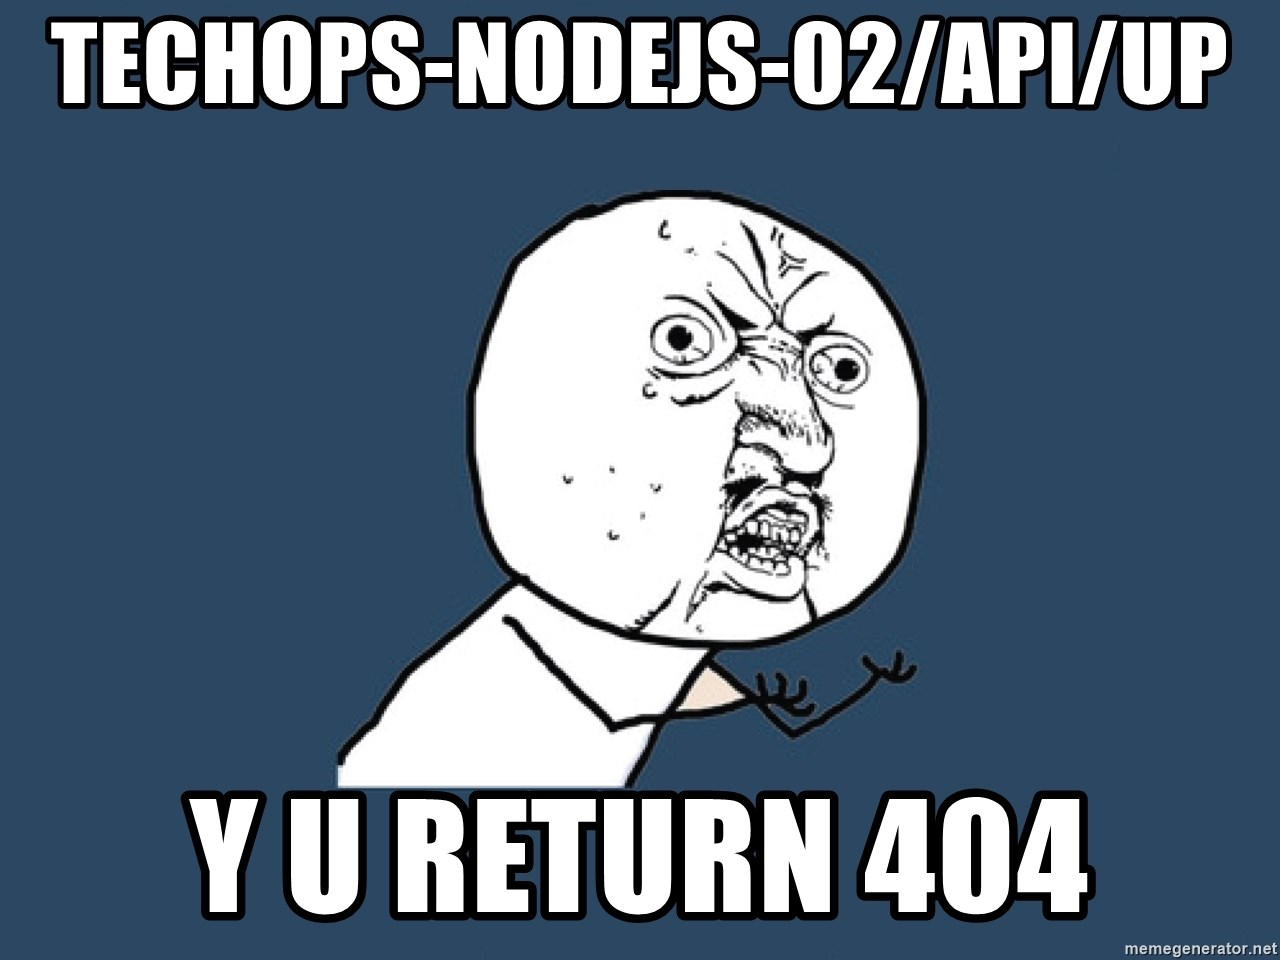 Y U No - techops-nodejs-02/api/up Y U RETURN 404